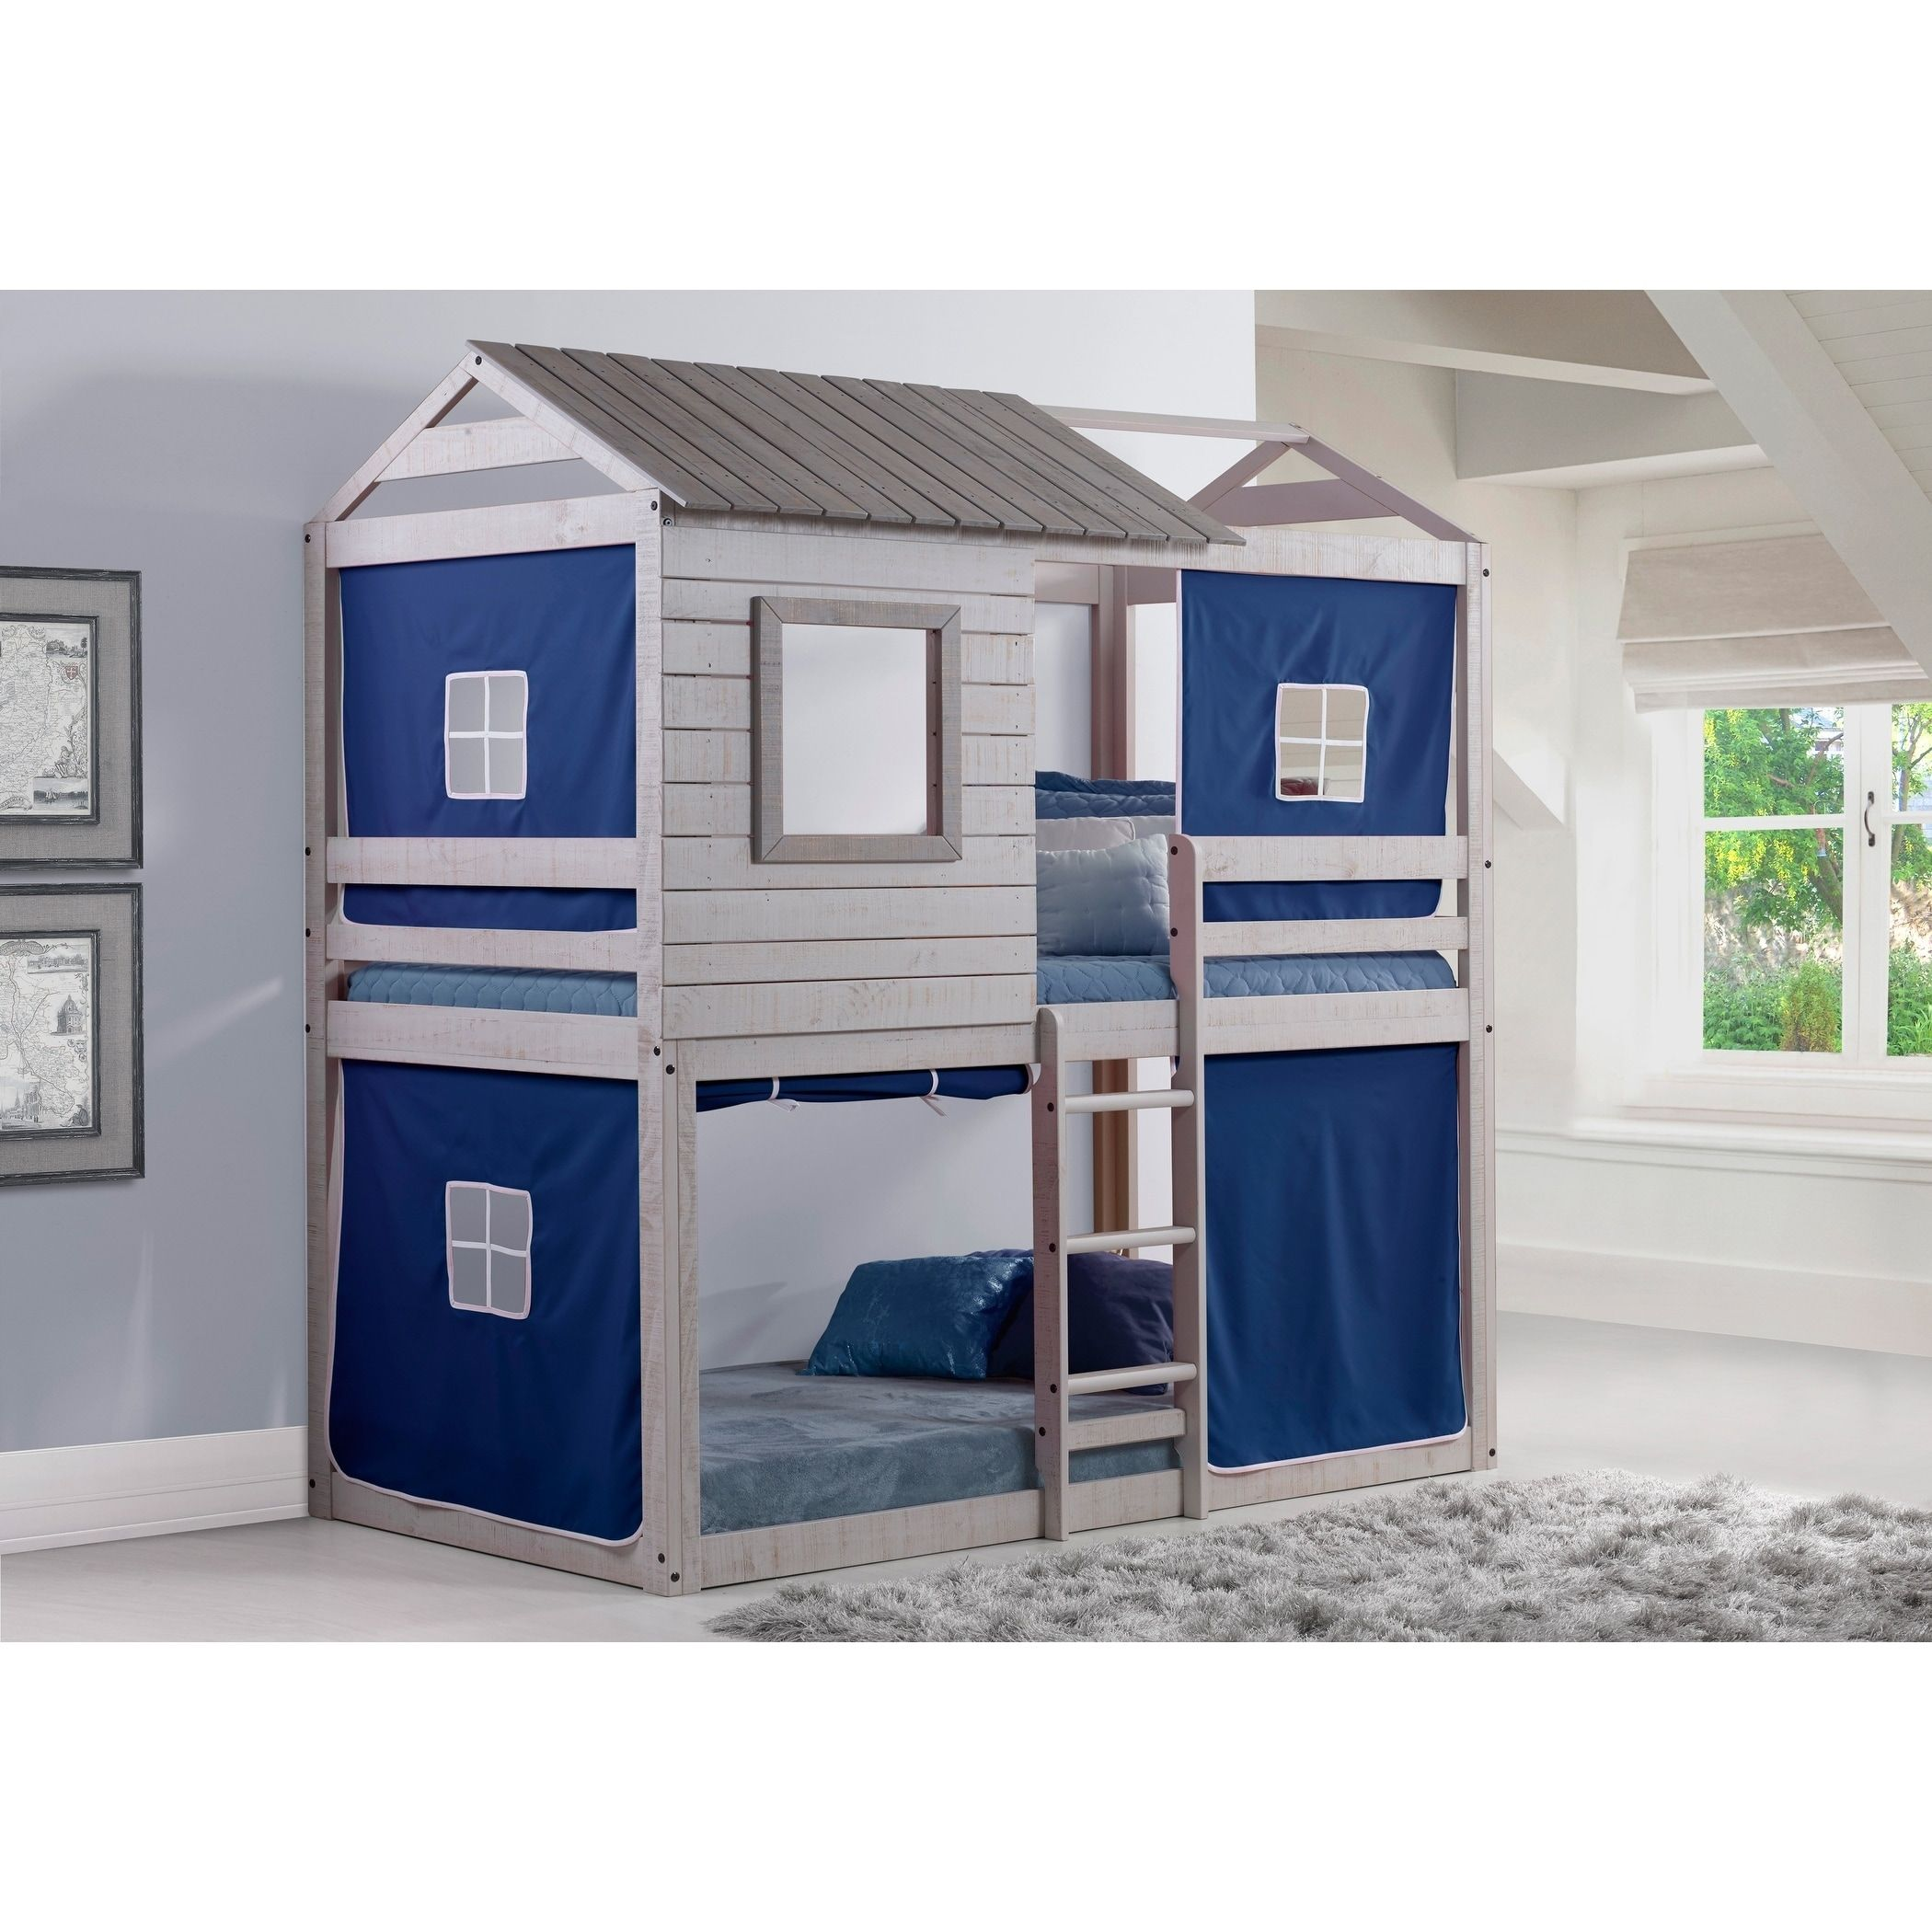 Loft bed ideas boys  Donco Kids Deer Blind Twin over Twin Bunk Loft with Tent in Light